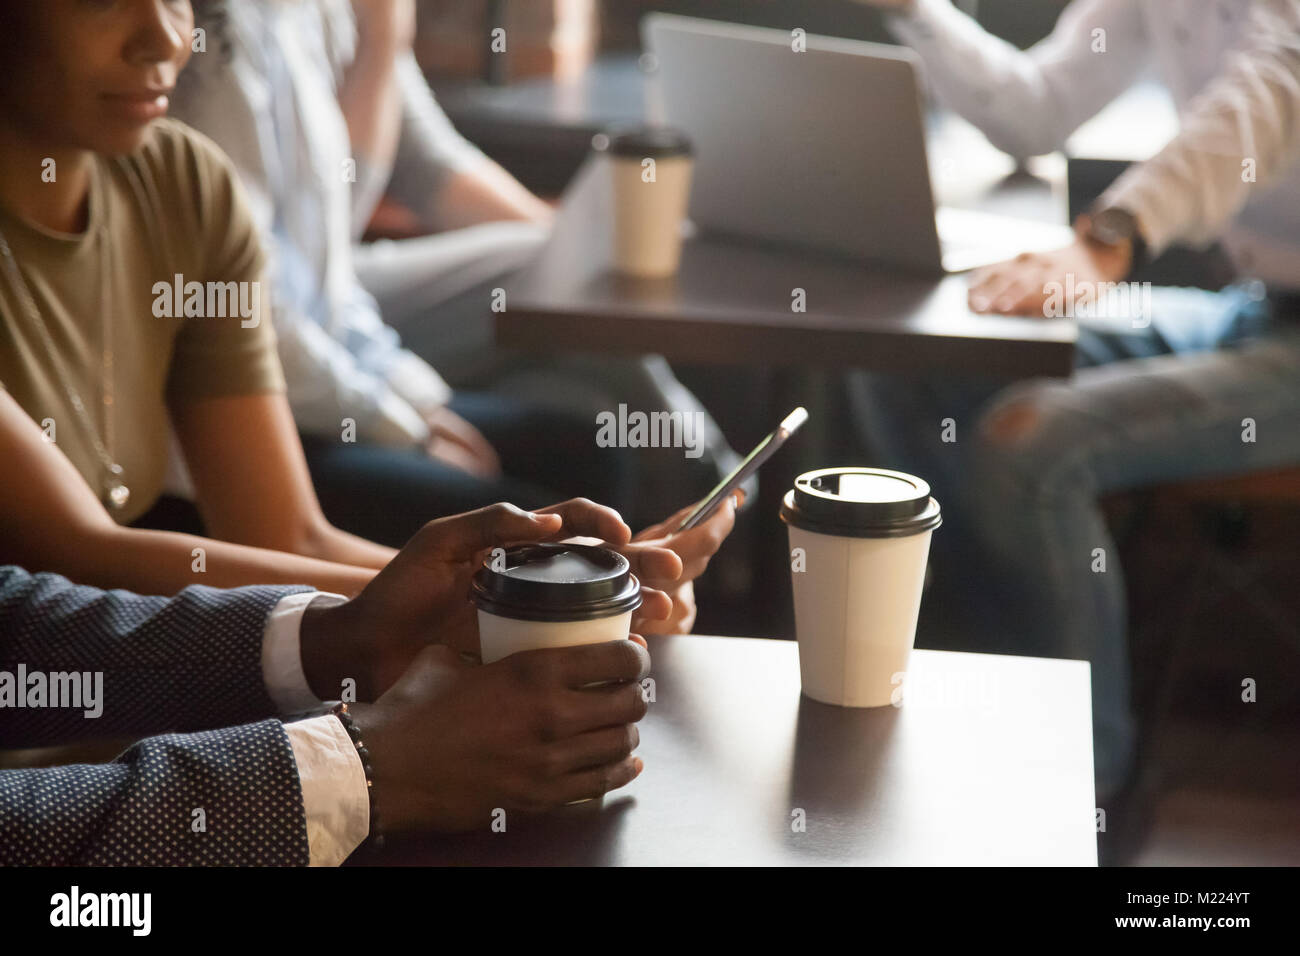 Coffee break in cafe with modern gadgets concept, closeup view - Stock Image